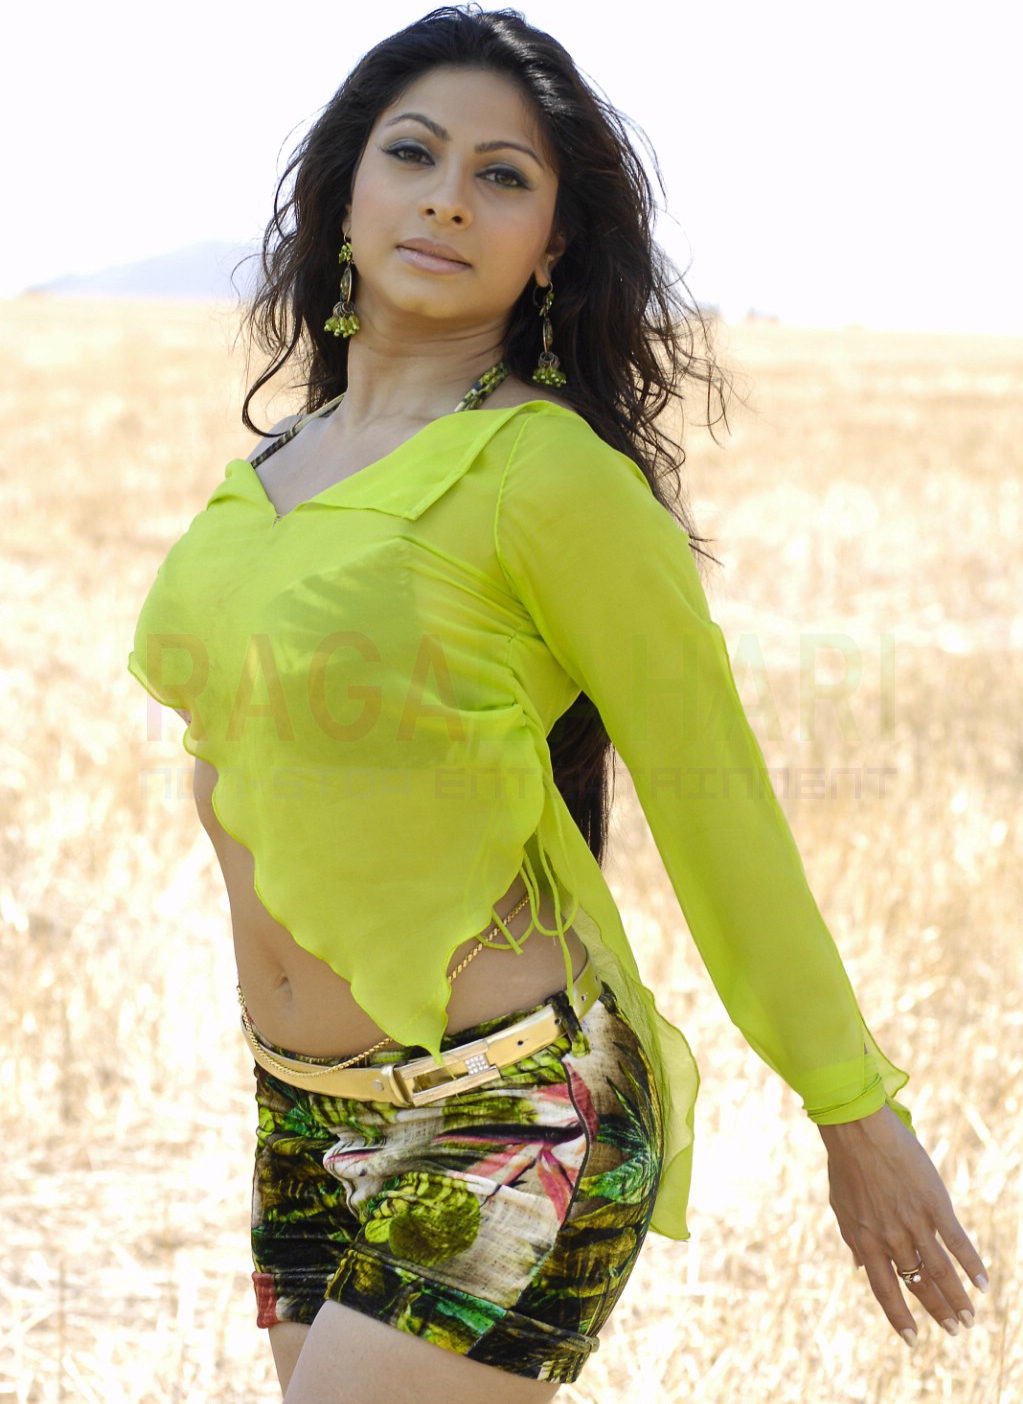 Actress Tanisha Hot Stills - Indian Film Actresses Hot And -5361